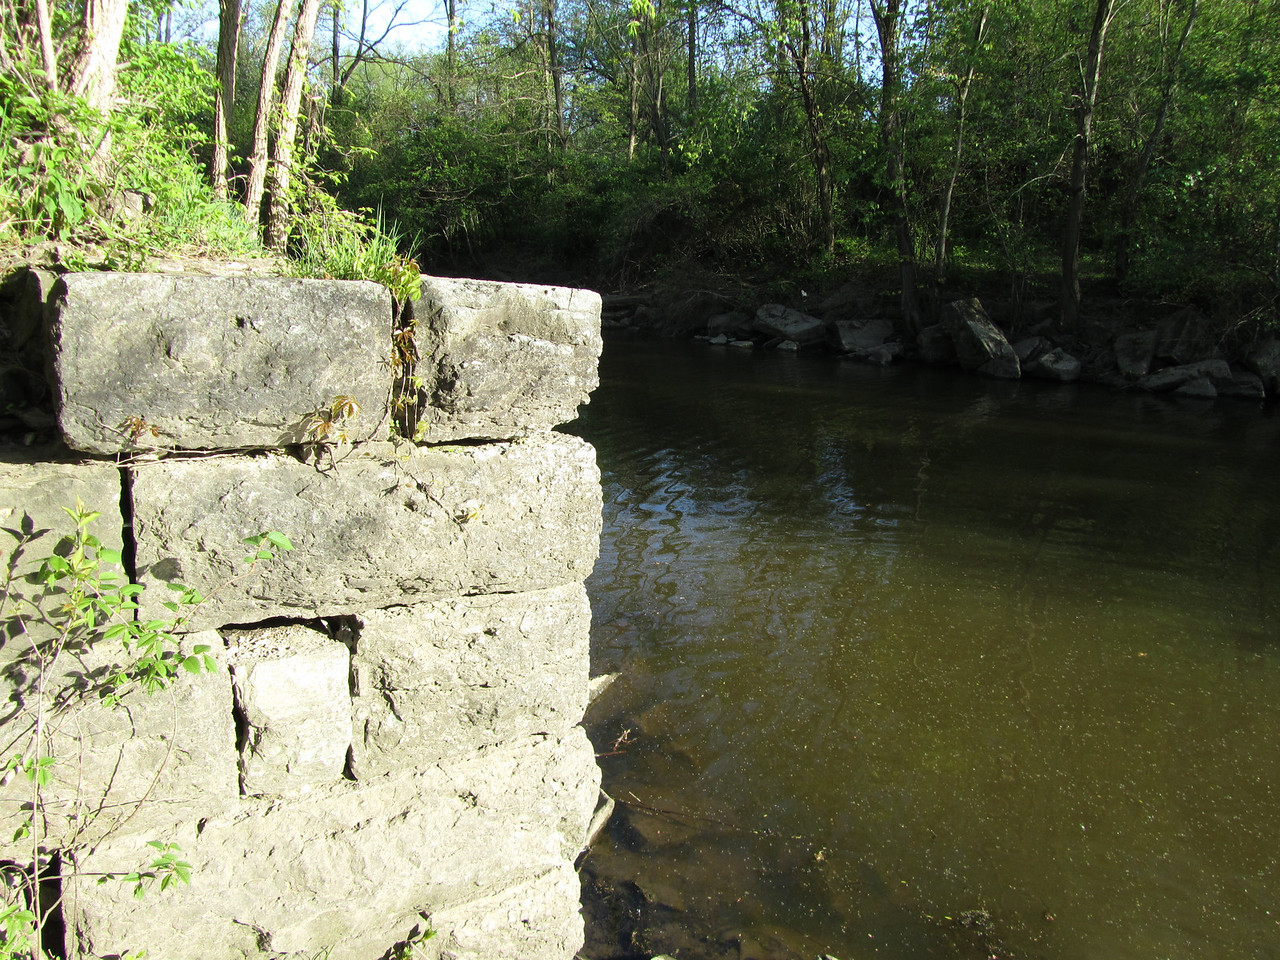 Another section of wall. There are dozens of these along the trails. I assume this was a bridge abutment or loading area.